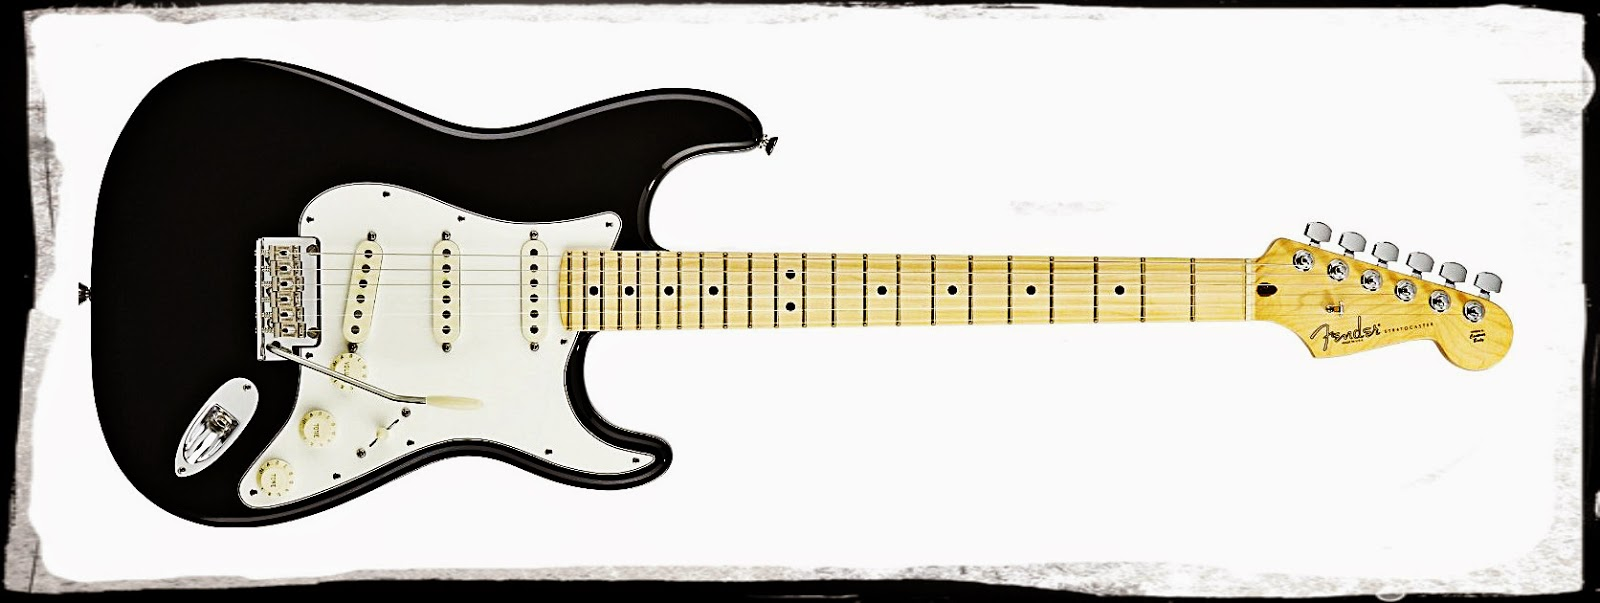 Deal on Fender American Standard Stratocaster